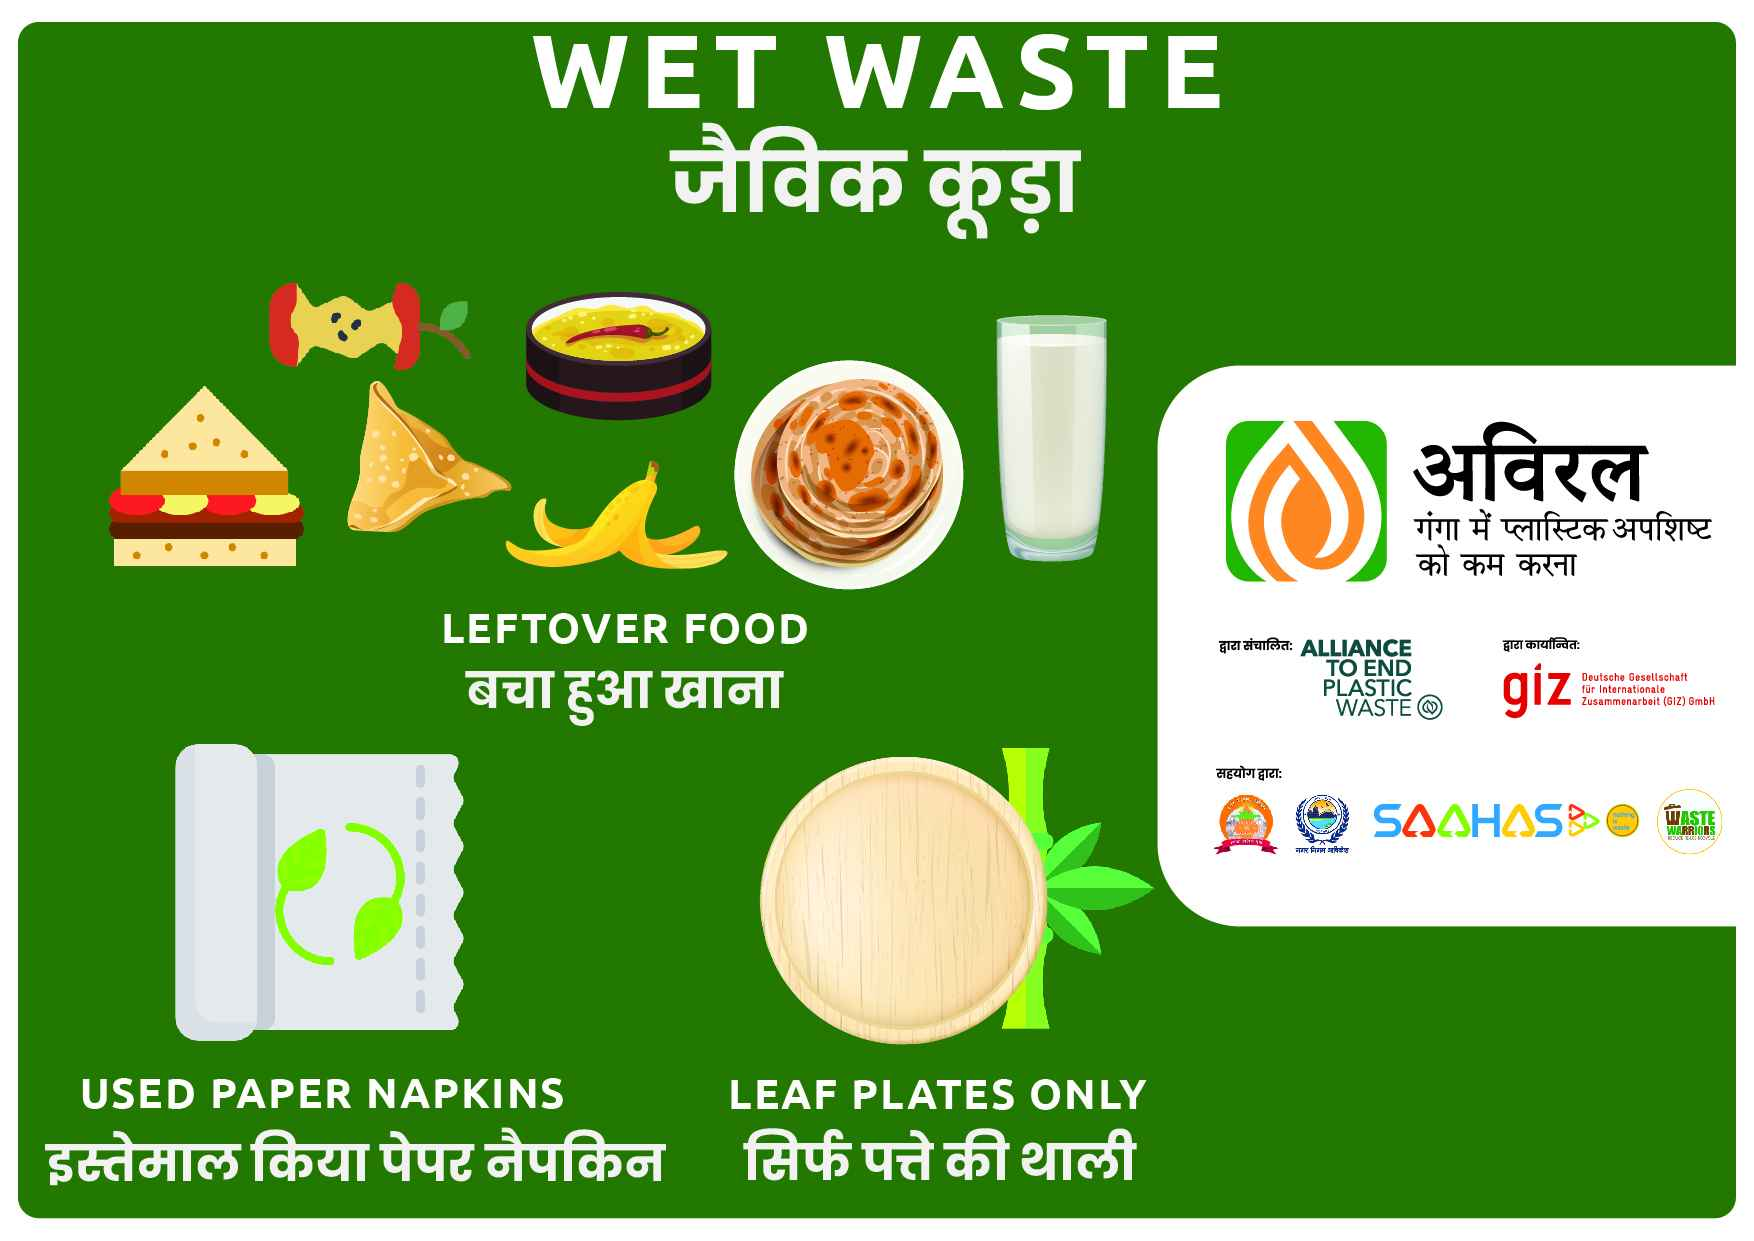 Bin Posters for Events-Wet Waste